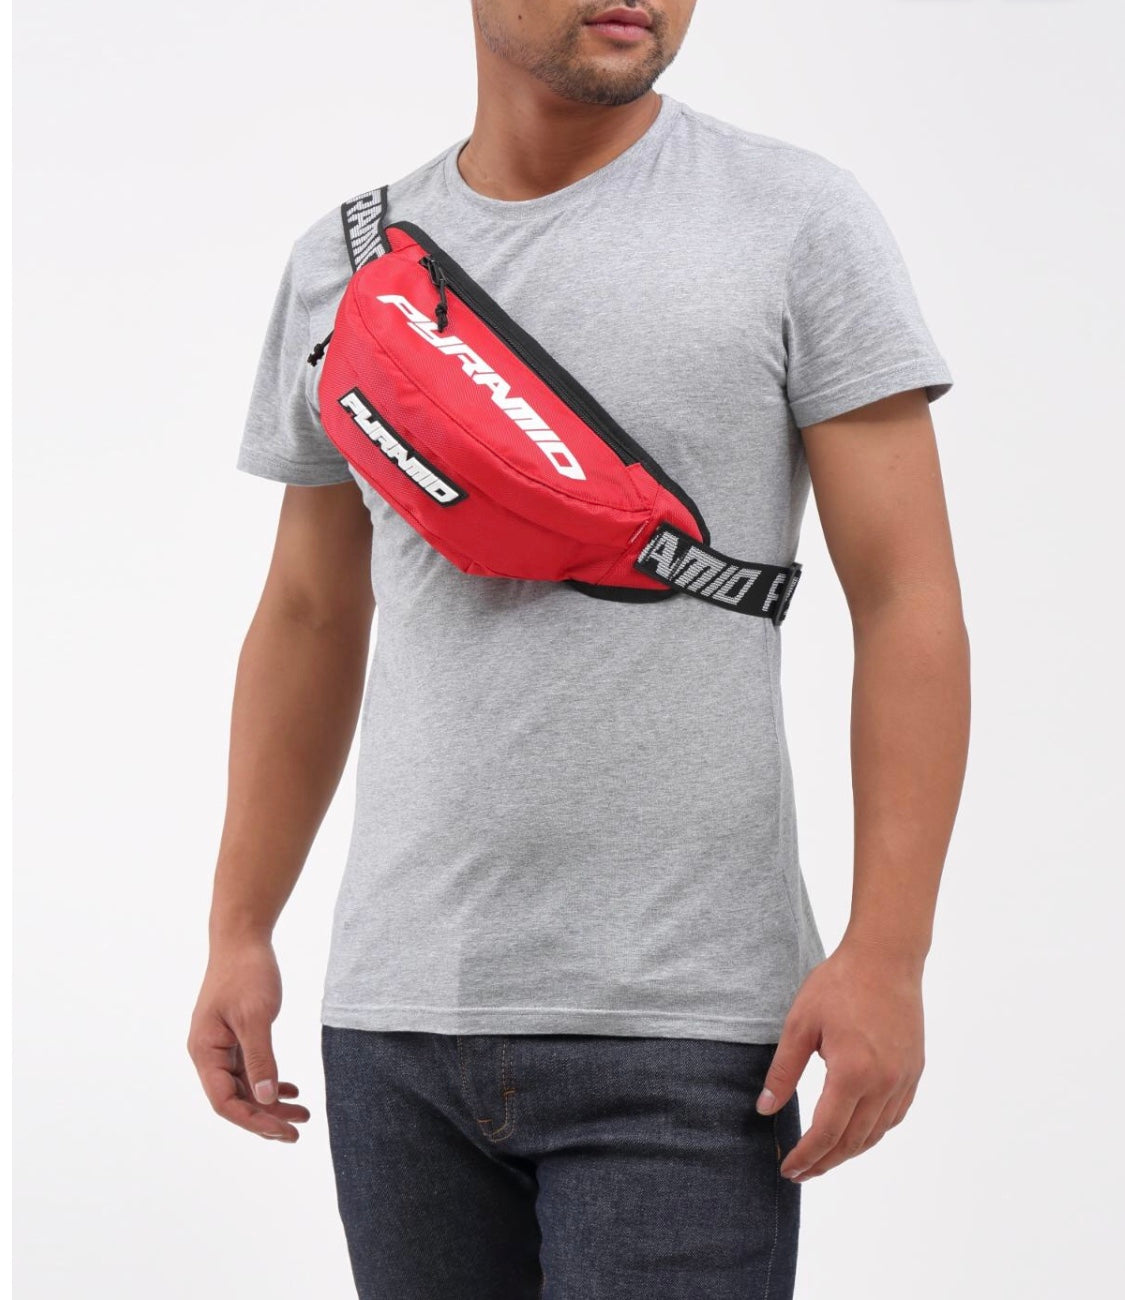 Black Pyramid Waist Bag (Red)